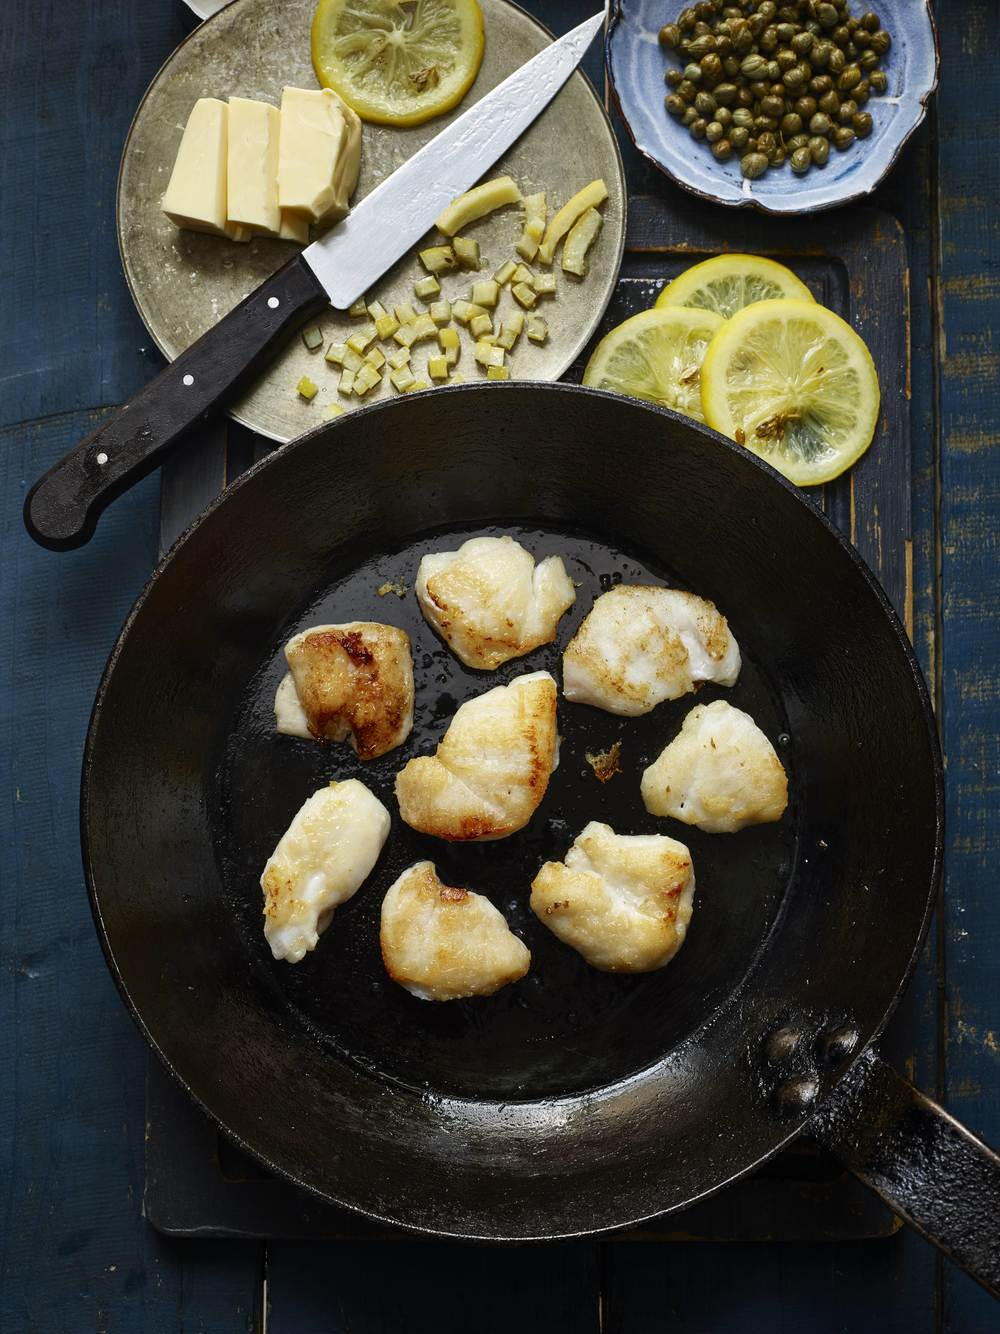 Pan-fried cod cheeks with preserved lemon